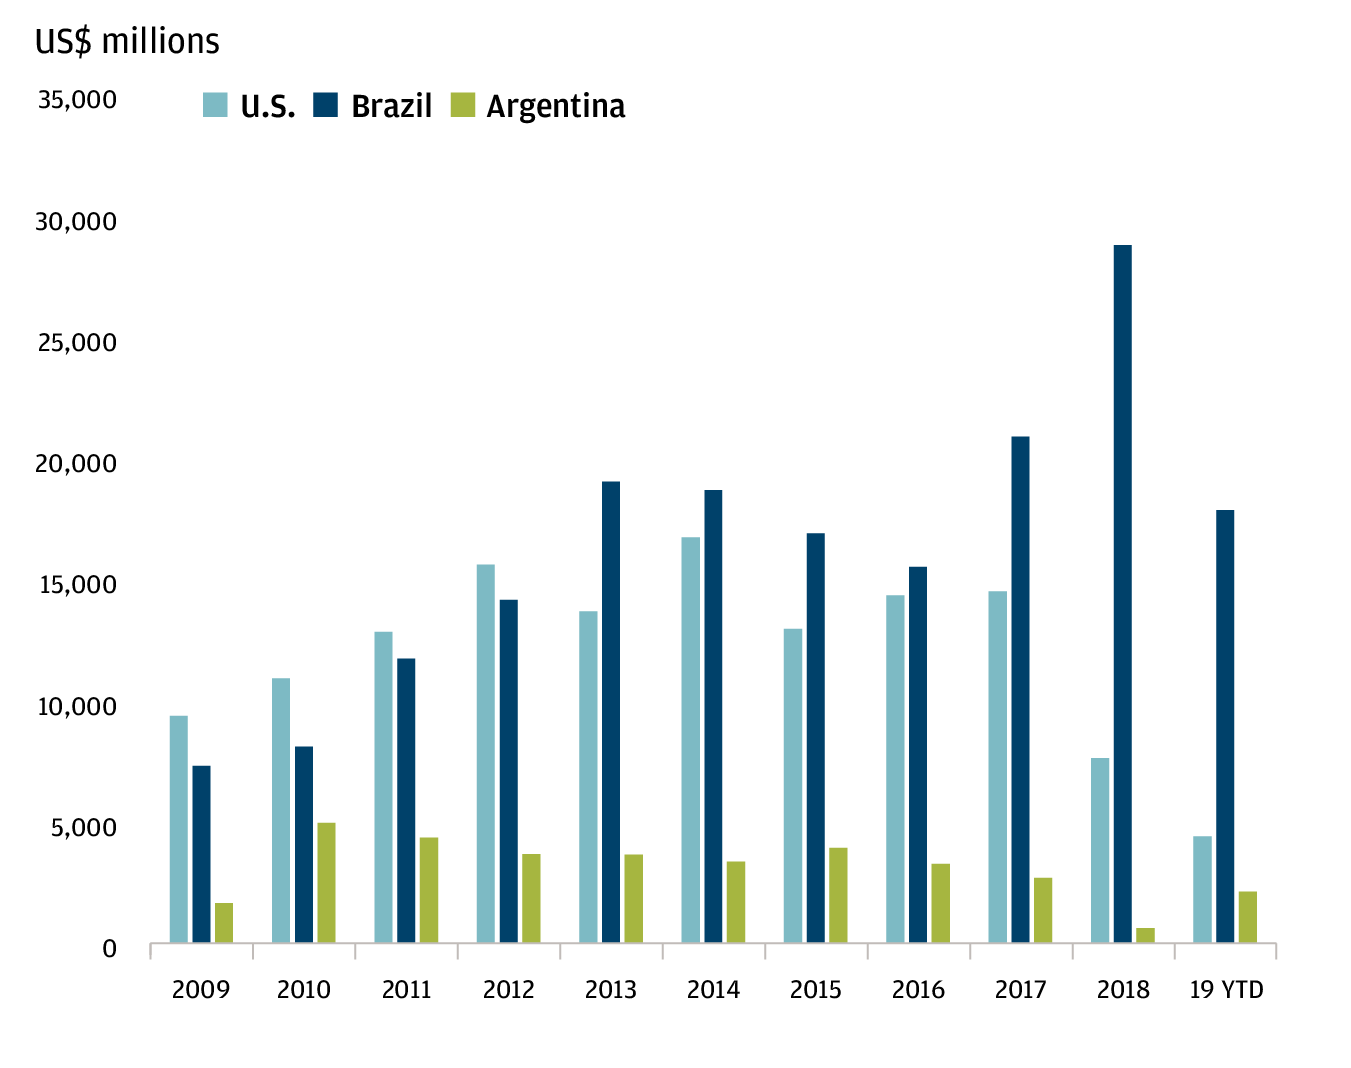 A bar chart showing China's annual soybean imports from major partners including Argentina, United States and Brazil from 2009 to 2019.